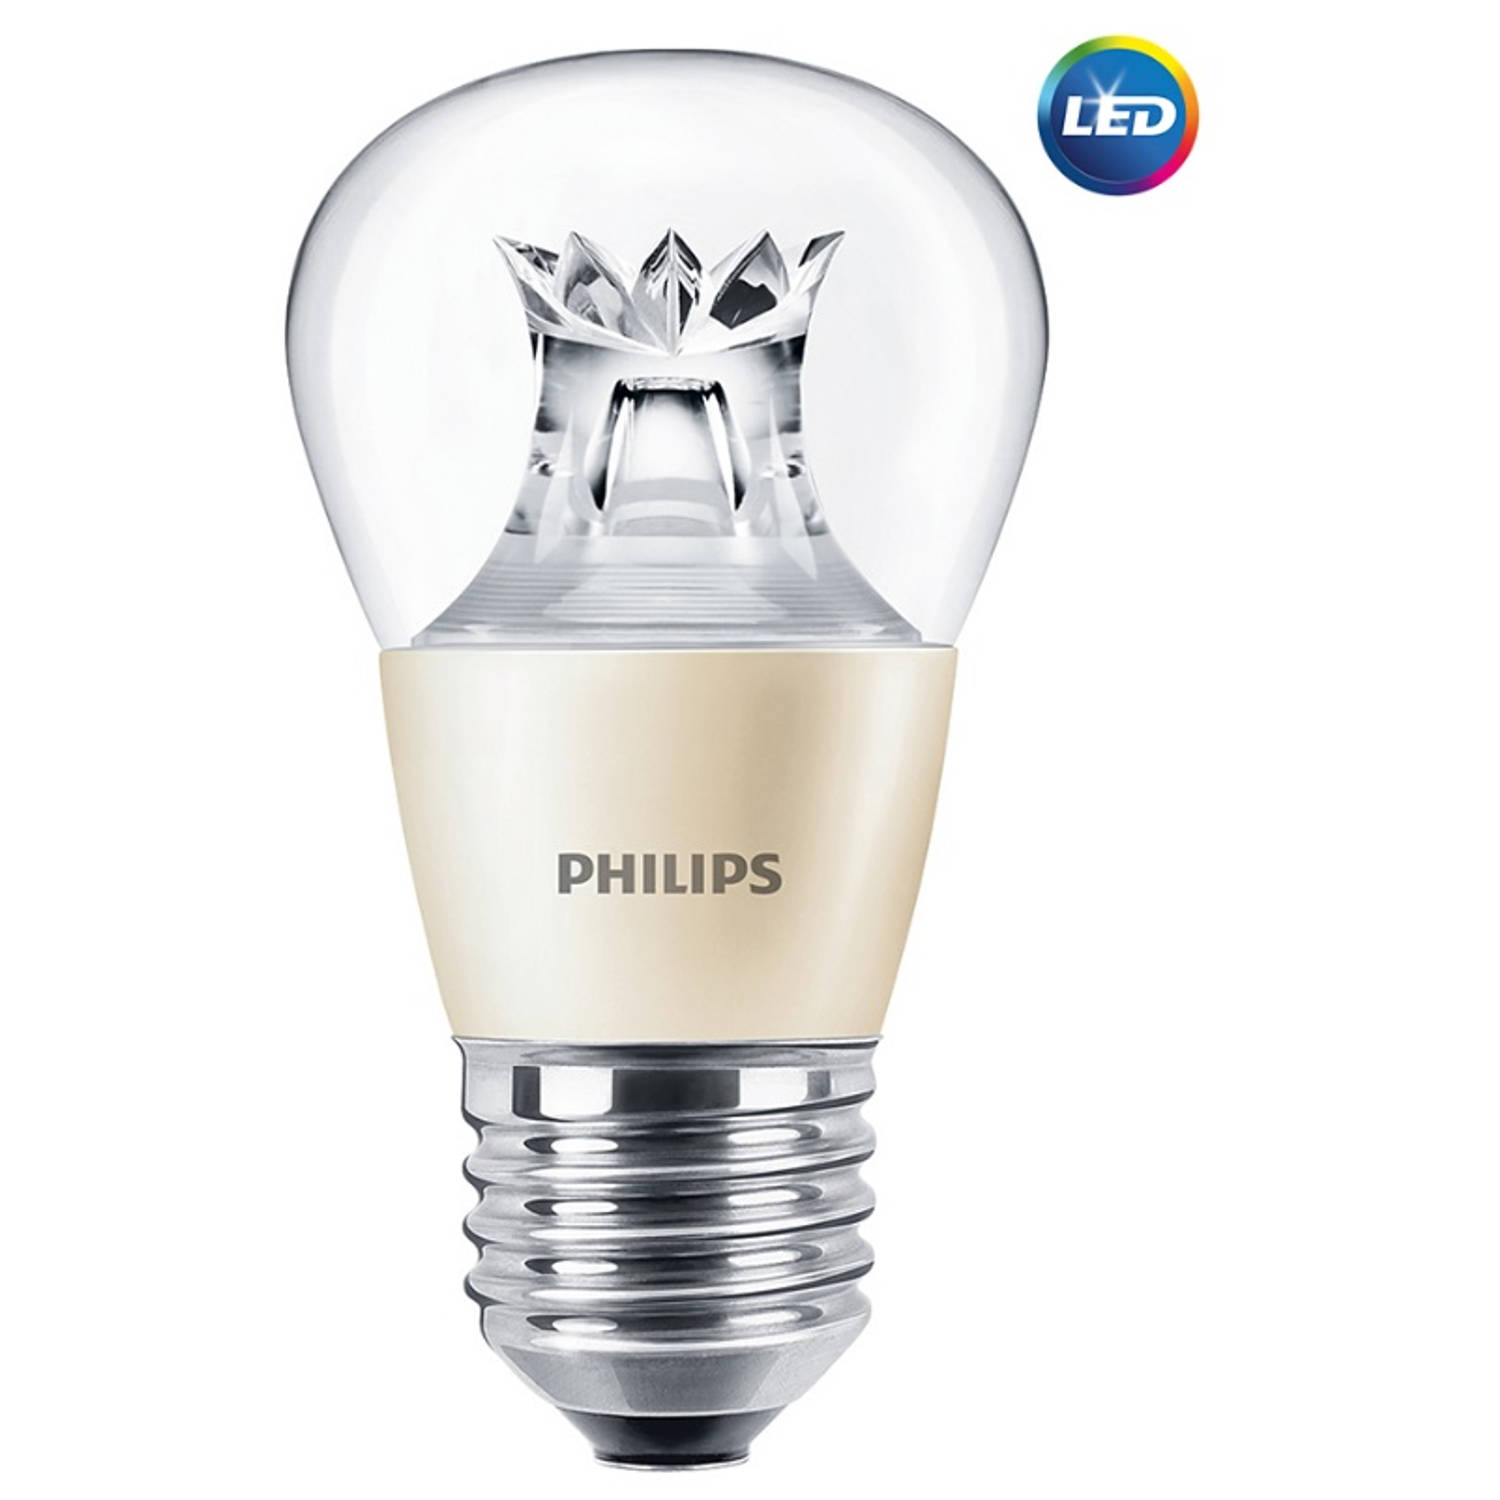 Philips LED Kogellamp E27 6-40W Helder 2200-2700K Dimtone 470lm